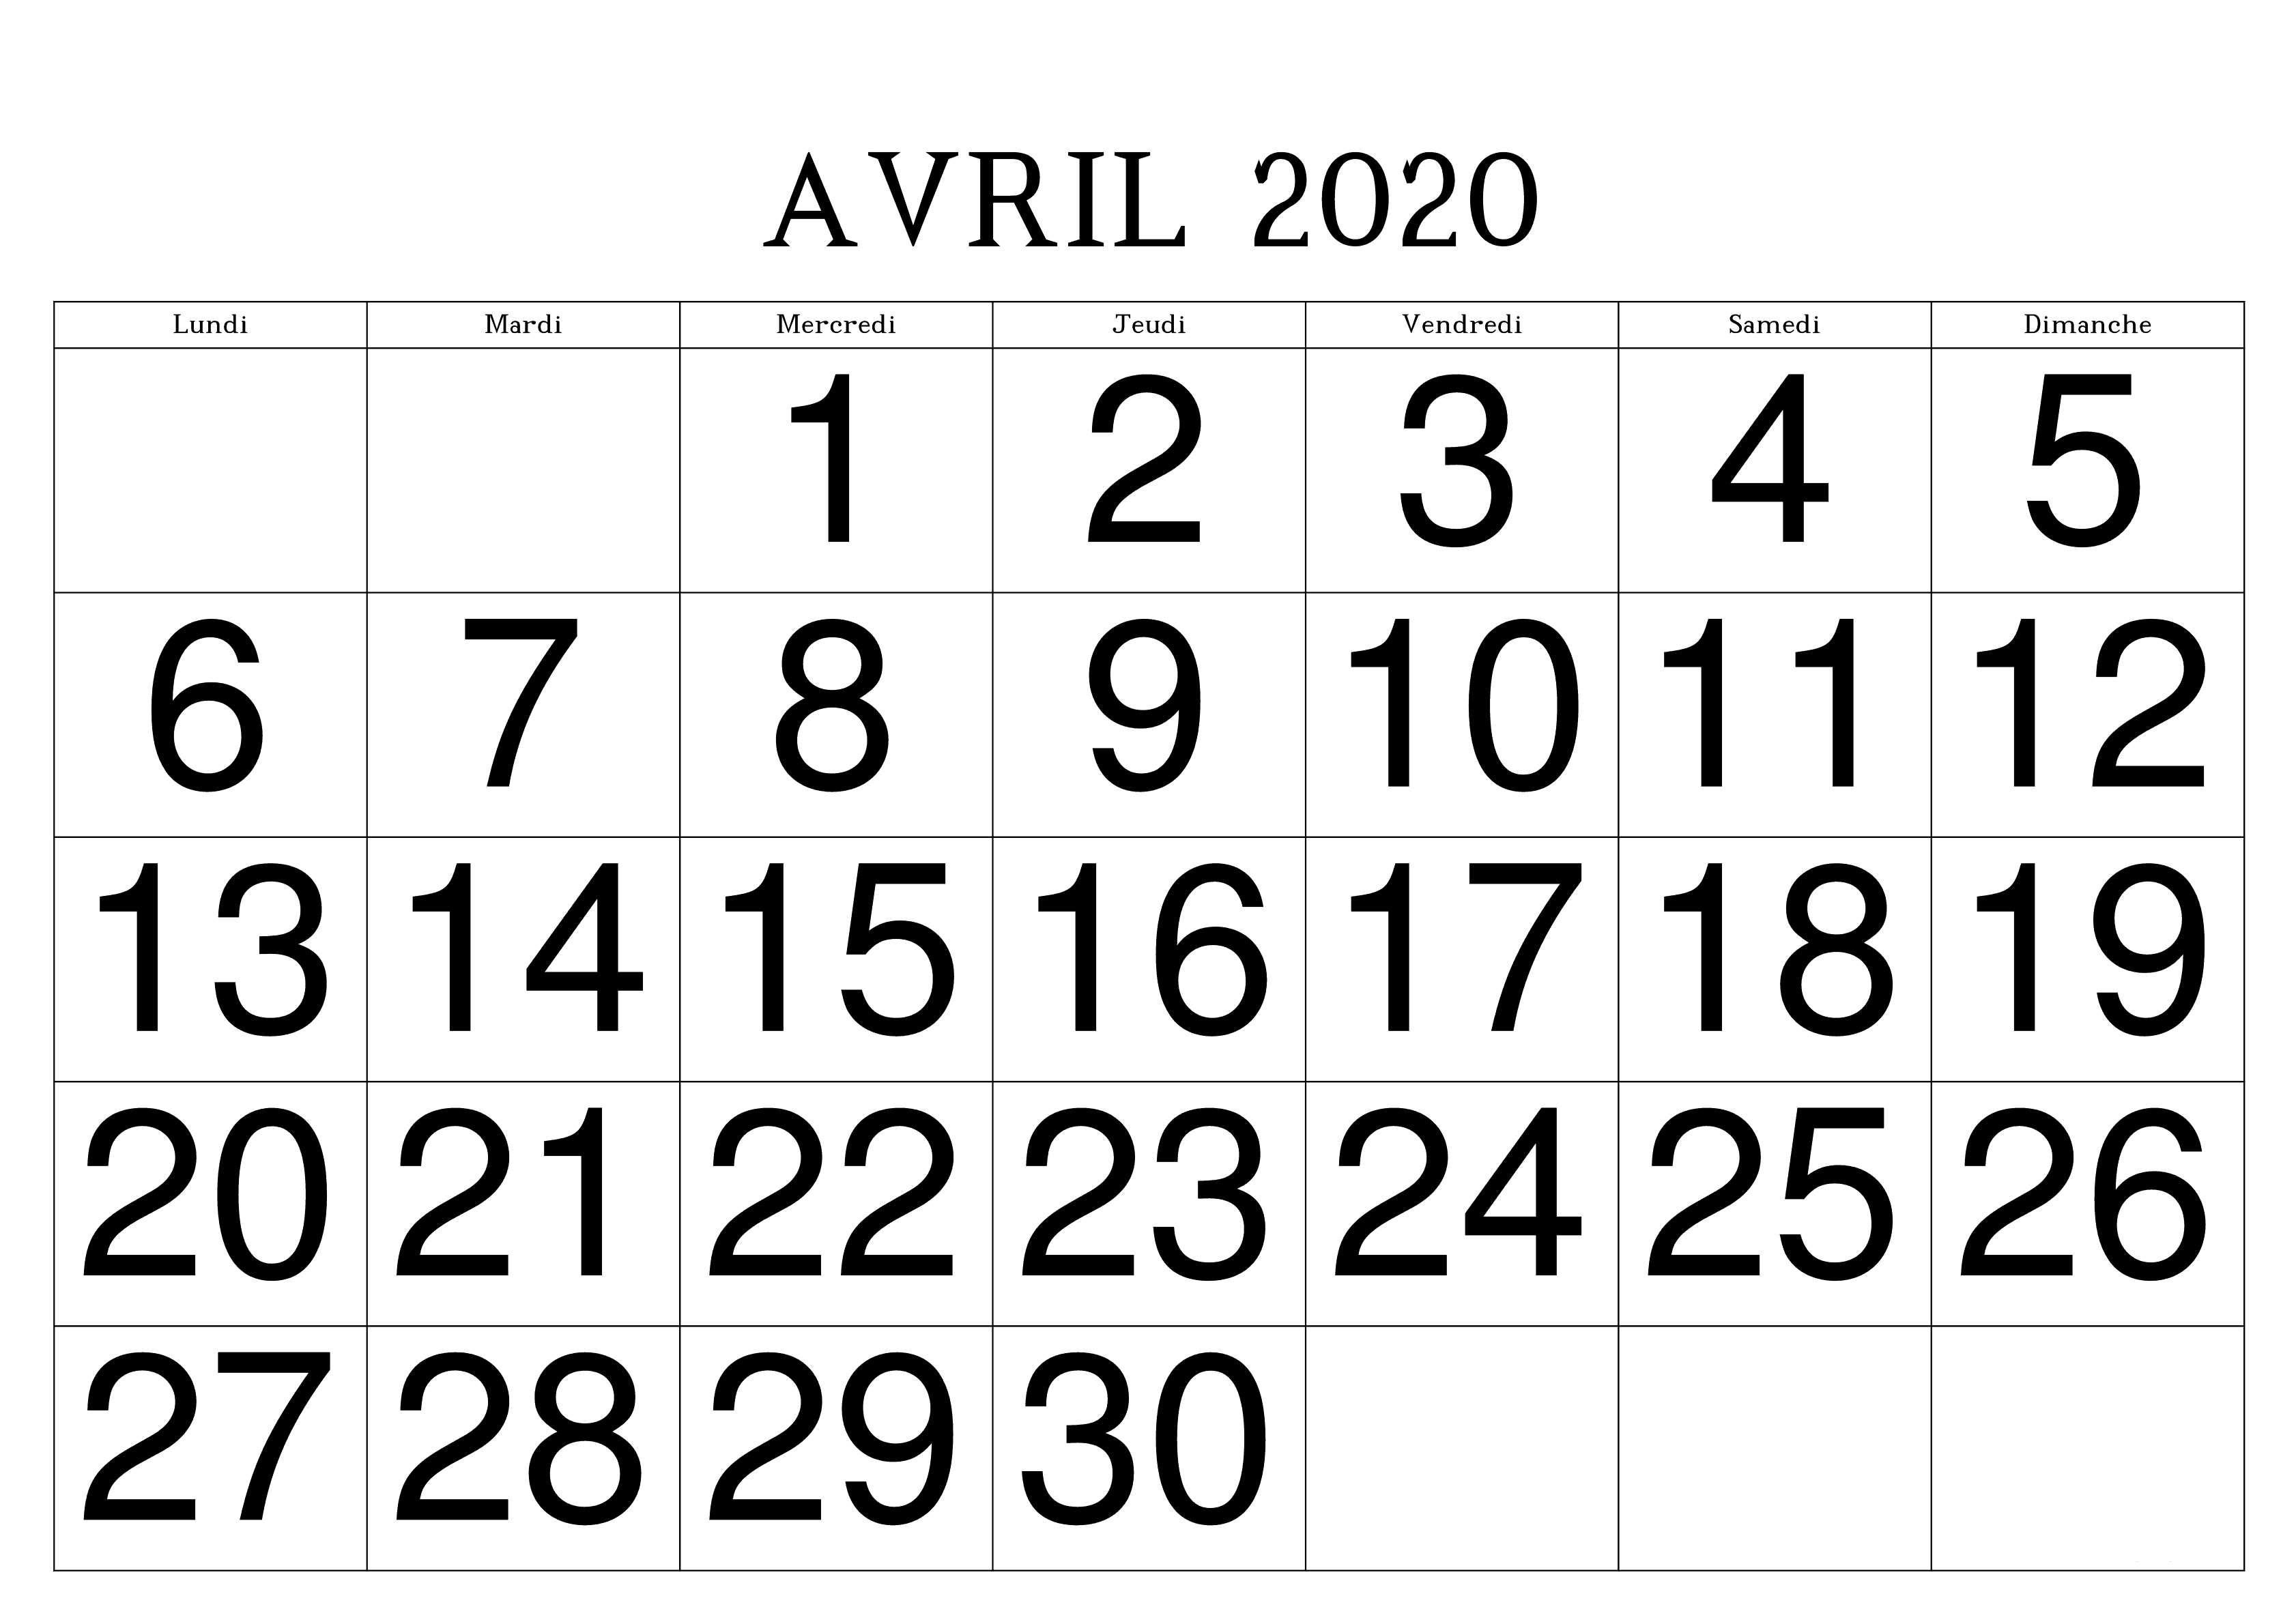 Calendrier Avril 2020 PDF Table